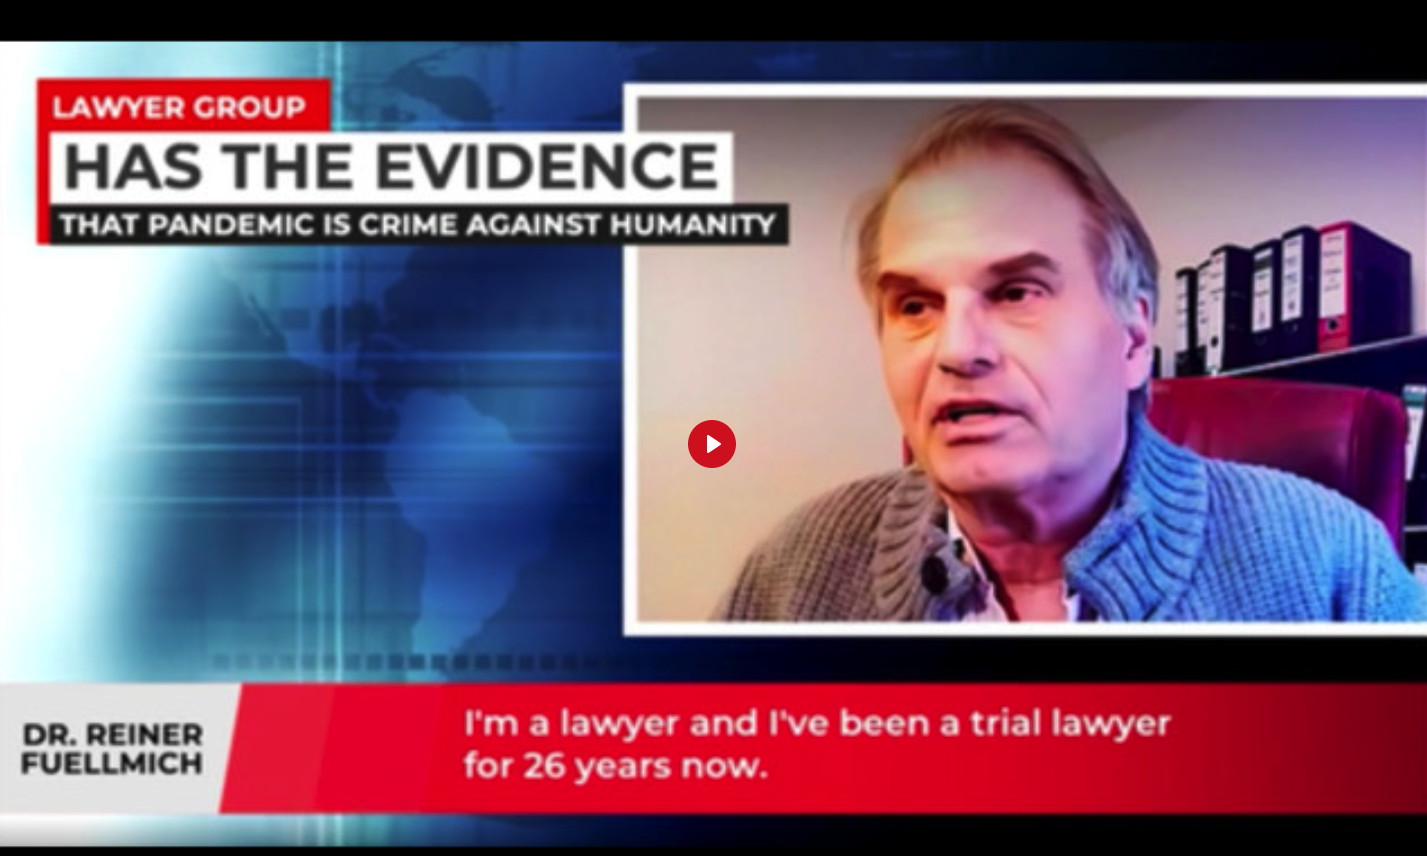 Dr Reiner Fuellmich, International Lawyer Has All the Evidence 6Q7Th6HJgW